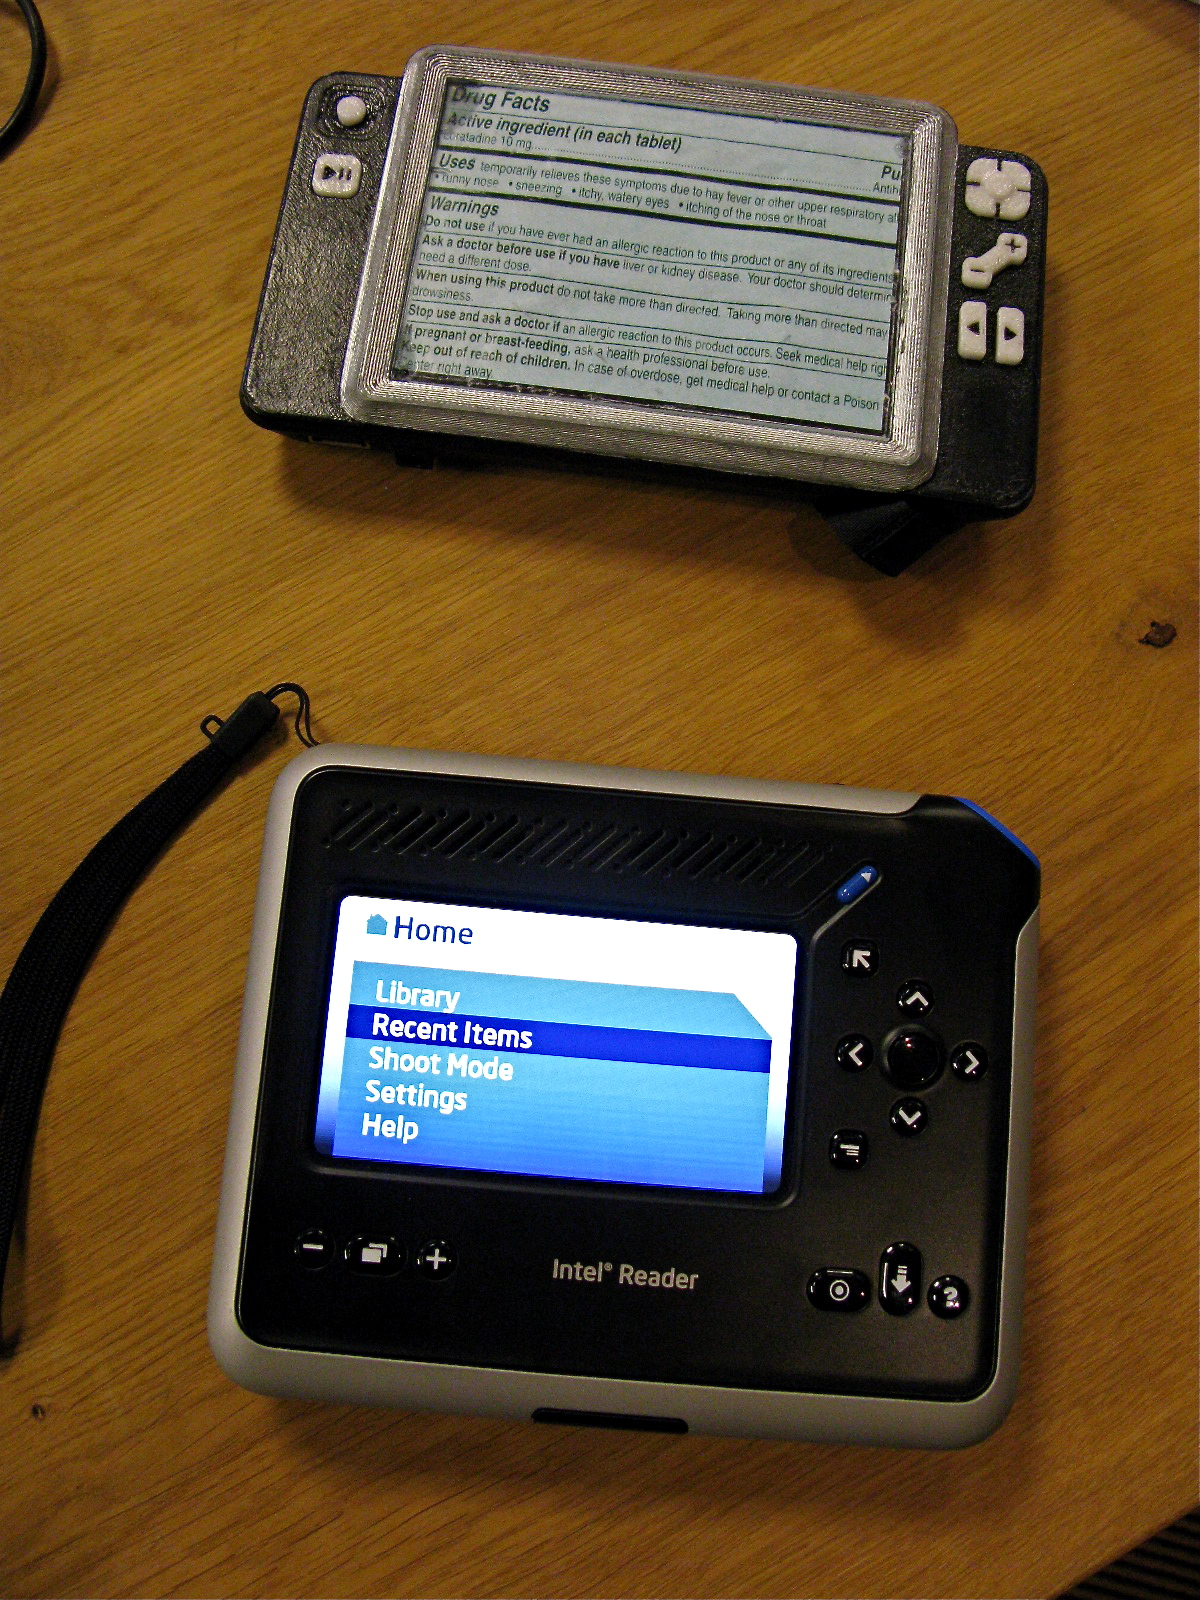 Intel Reader - First Prototype and First Product